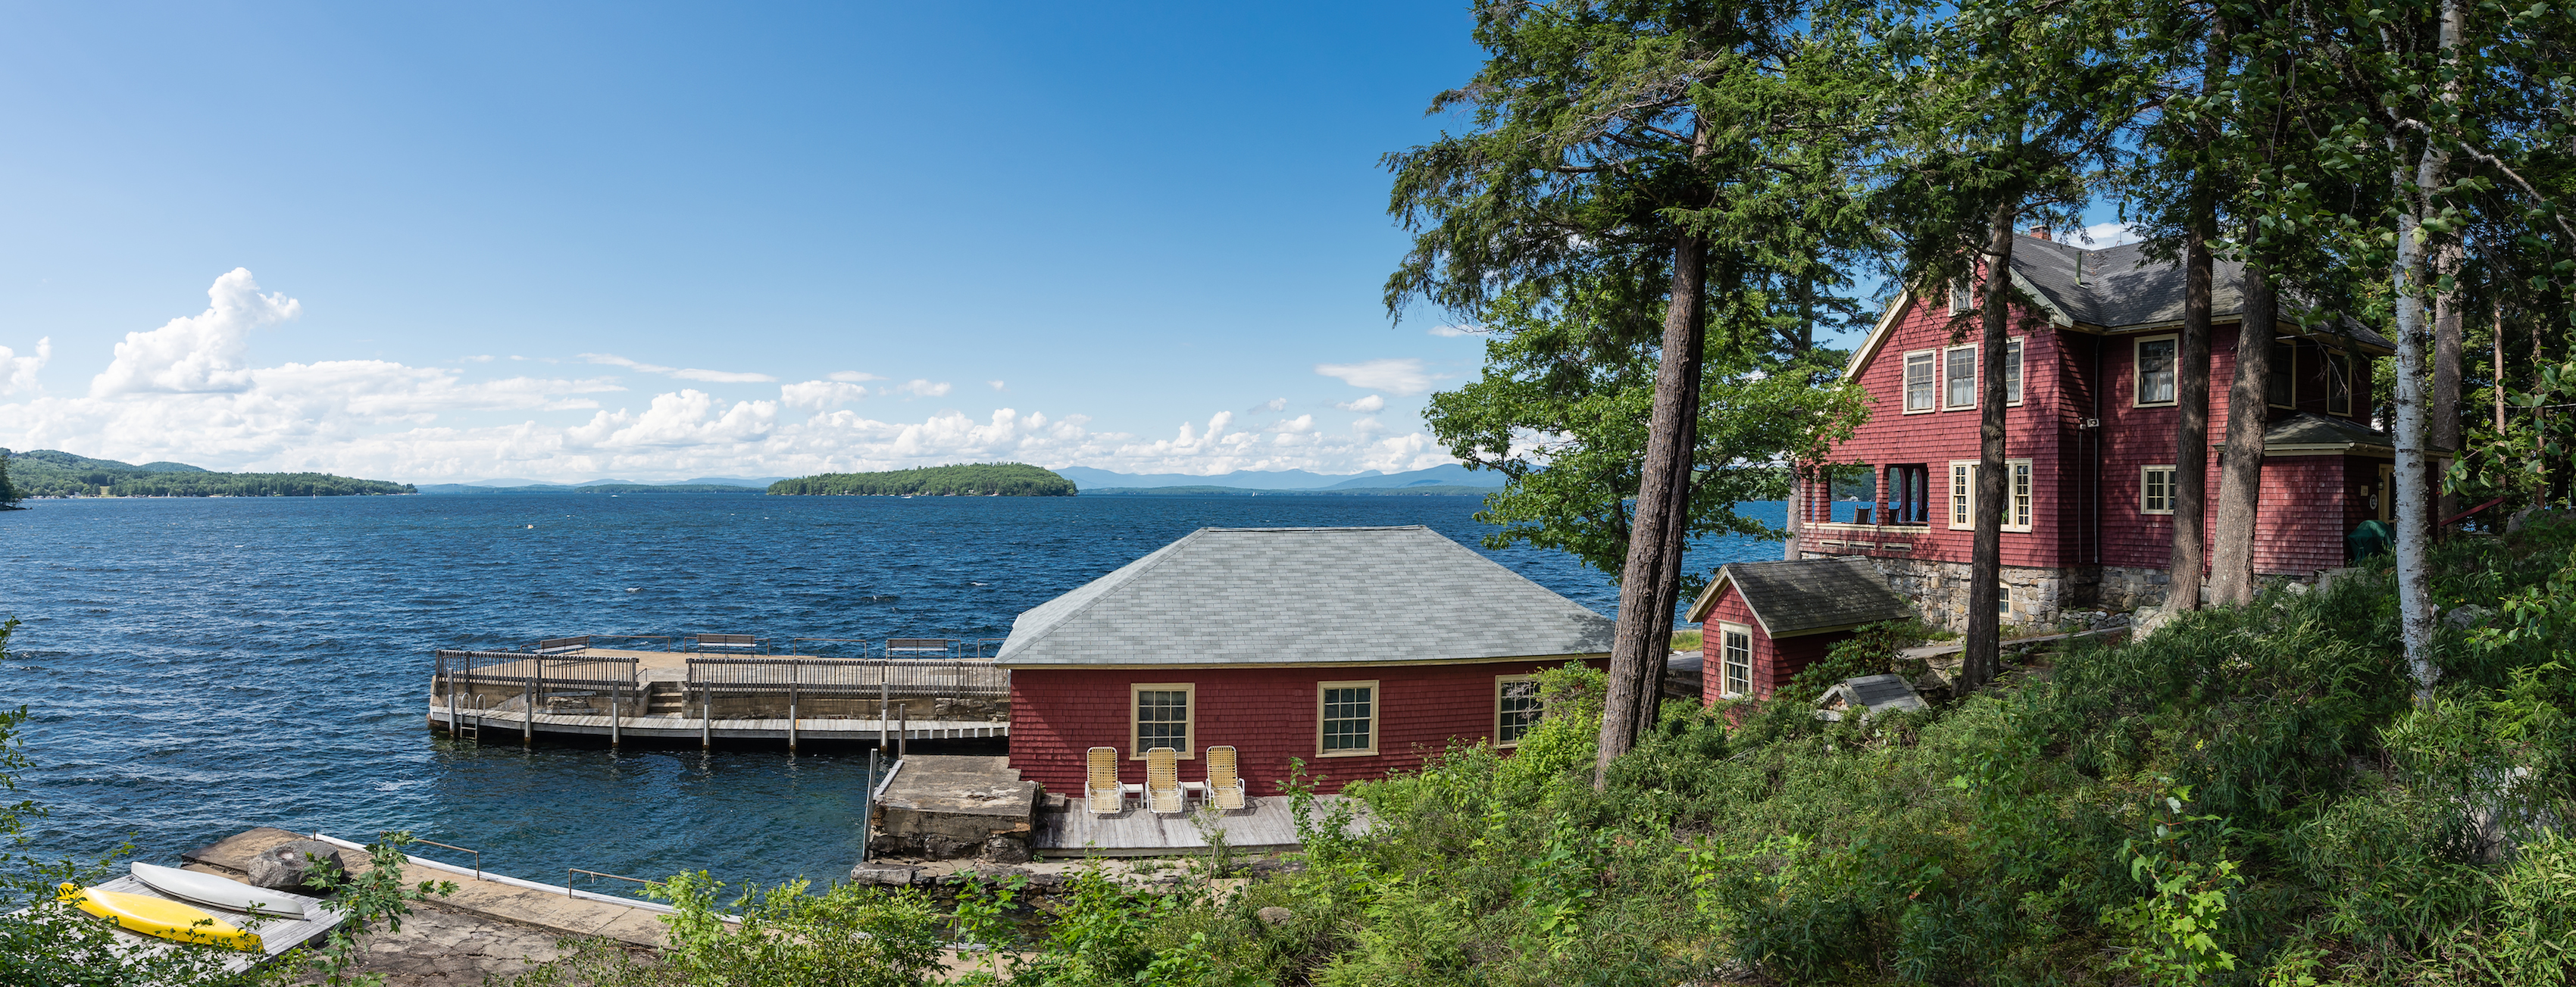 lake weirs in laconia for nh property winnipesaukee newly cottage cottages lakes beach renovated ha